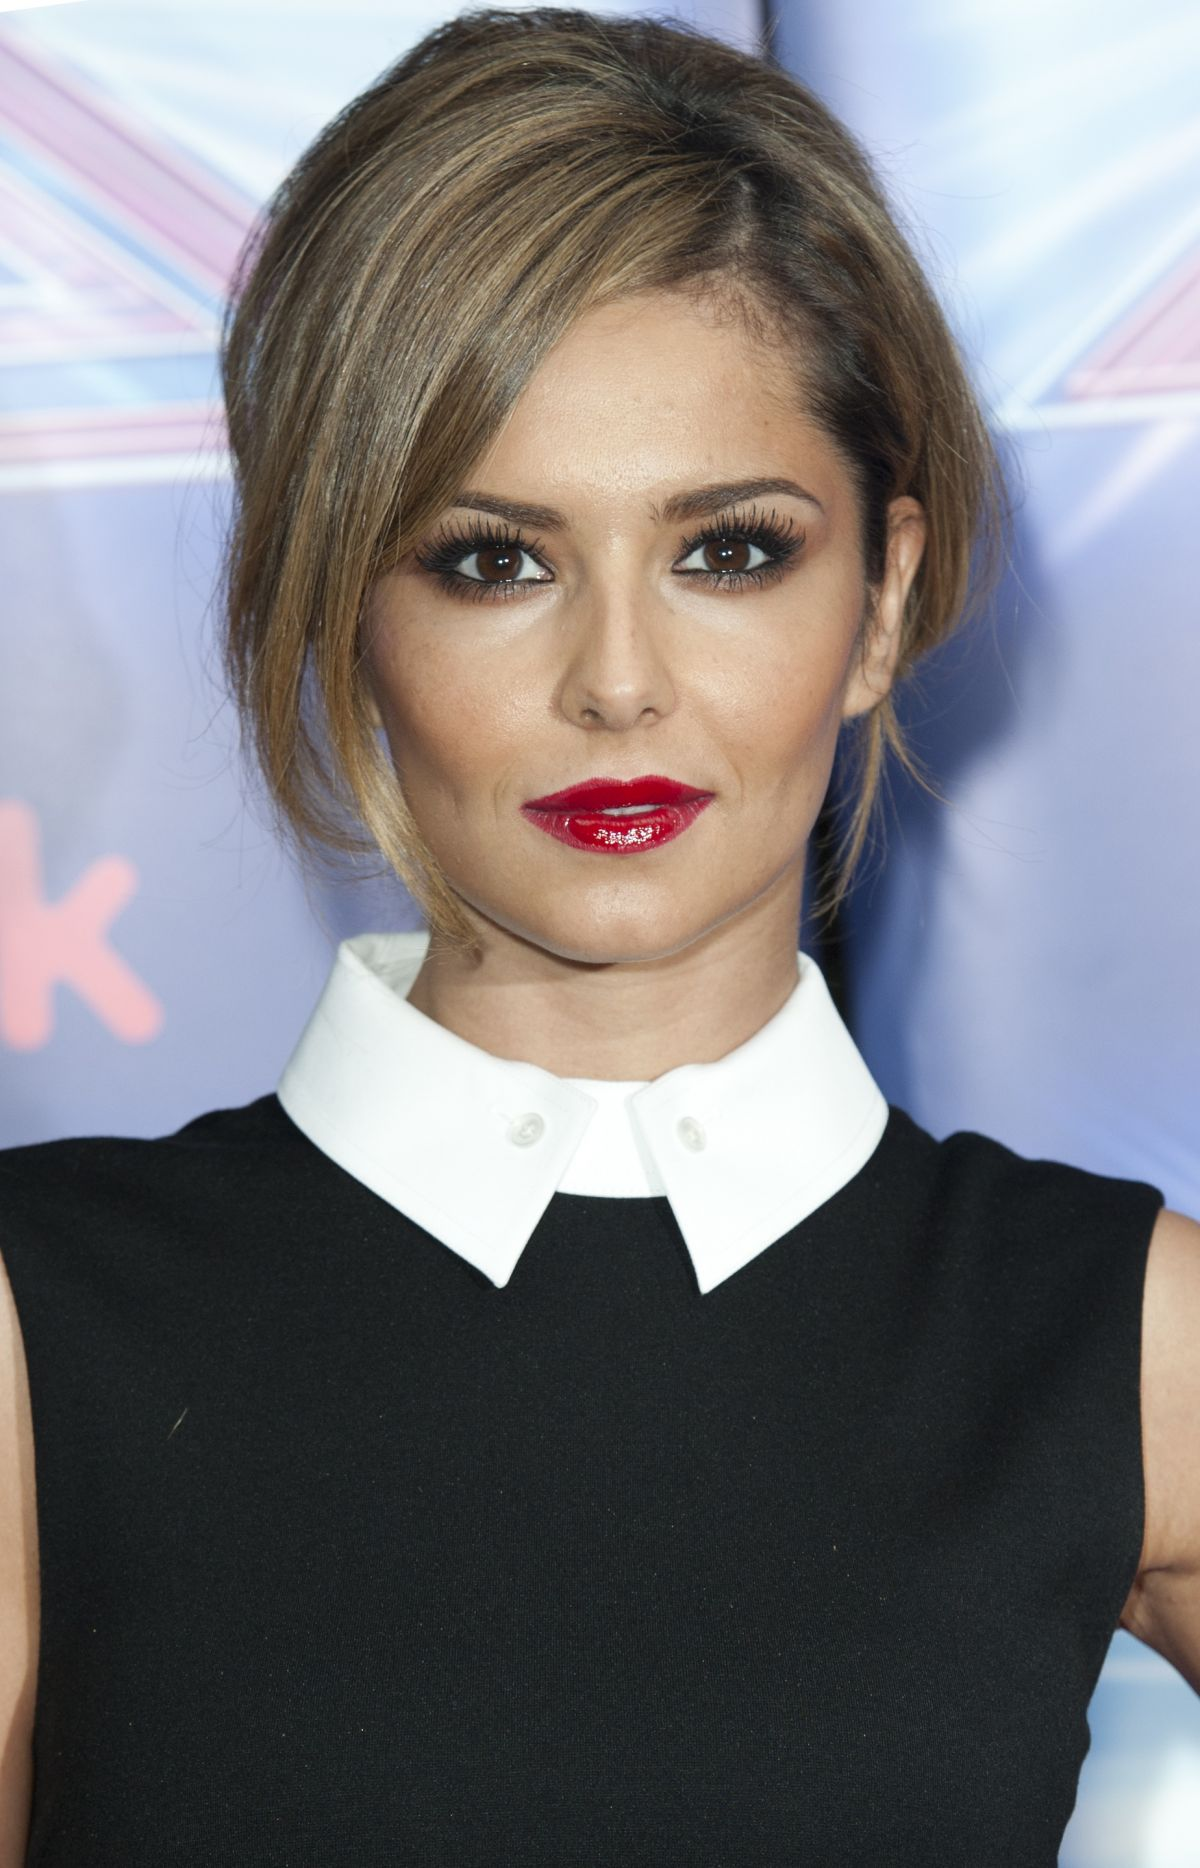 CHERYL COLE at X Factor Press Launch in London - HawtCelebs Cheryl Cole